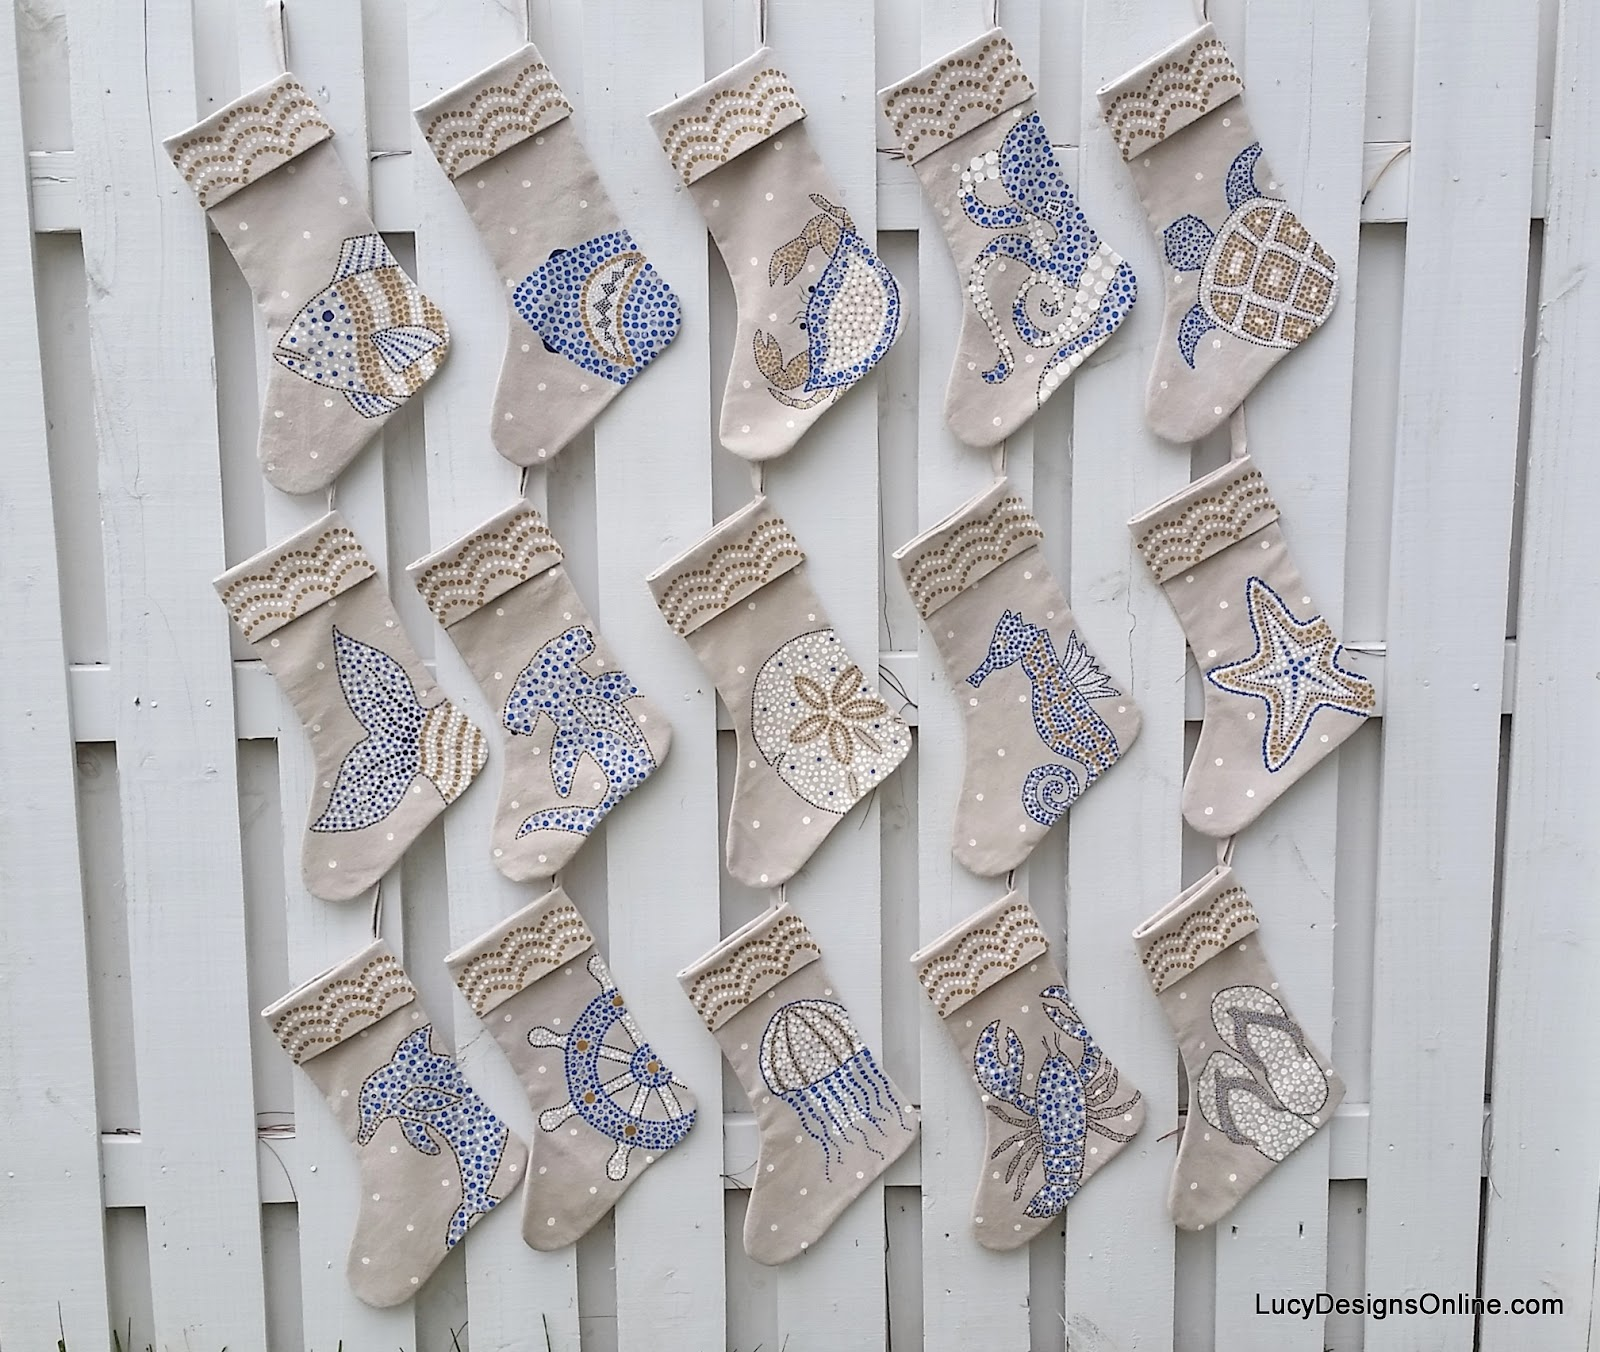 Lucy Designs hand painted sea life stockings